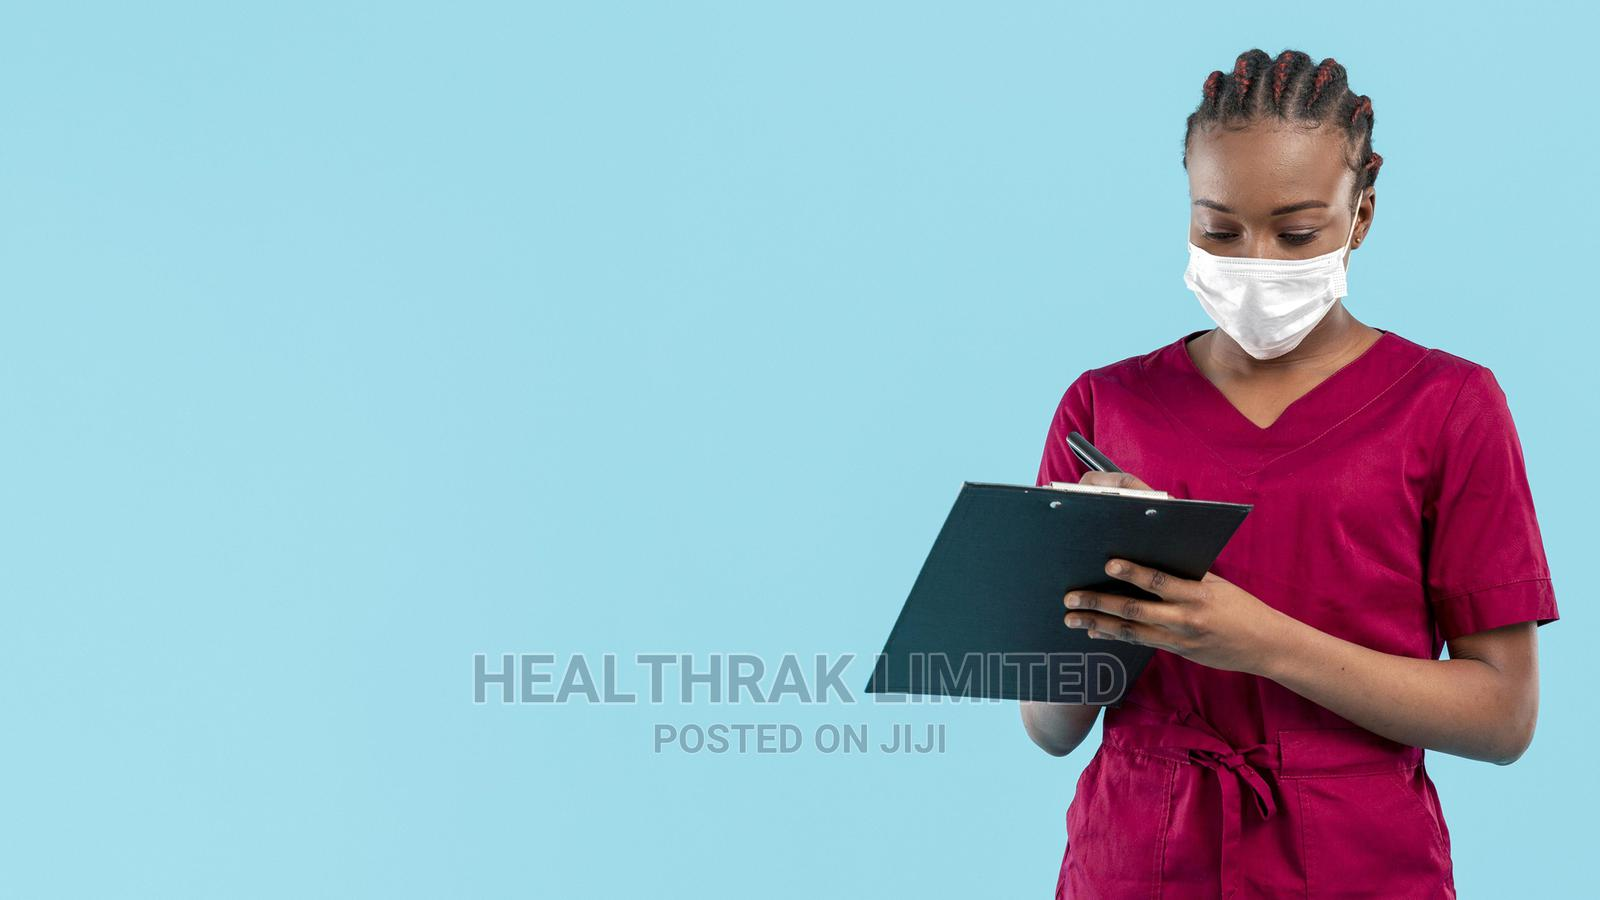 Archive: Community Health Worker Wanted